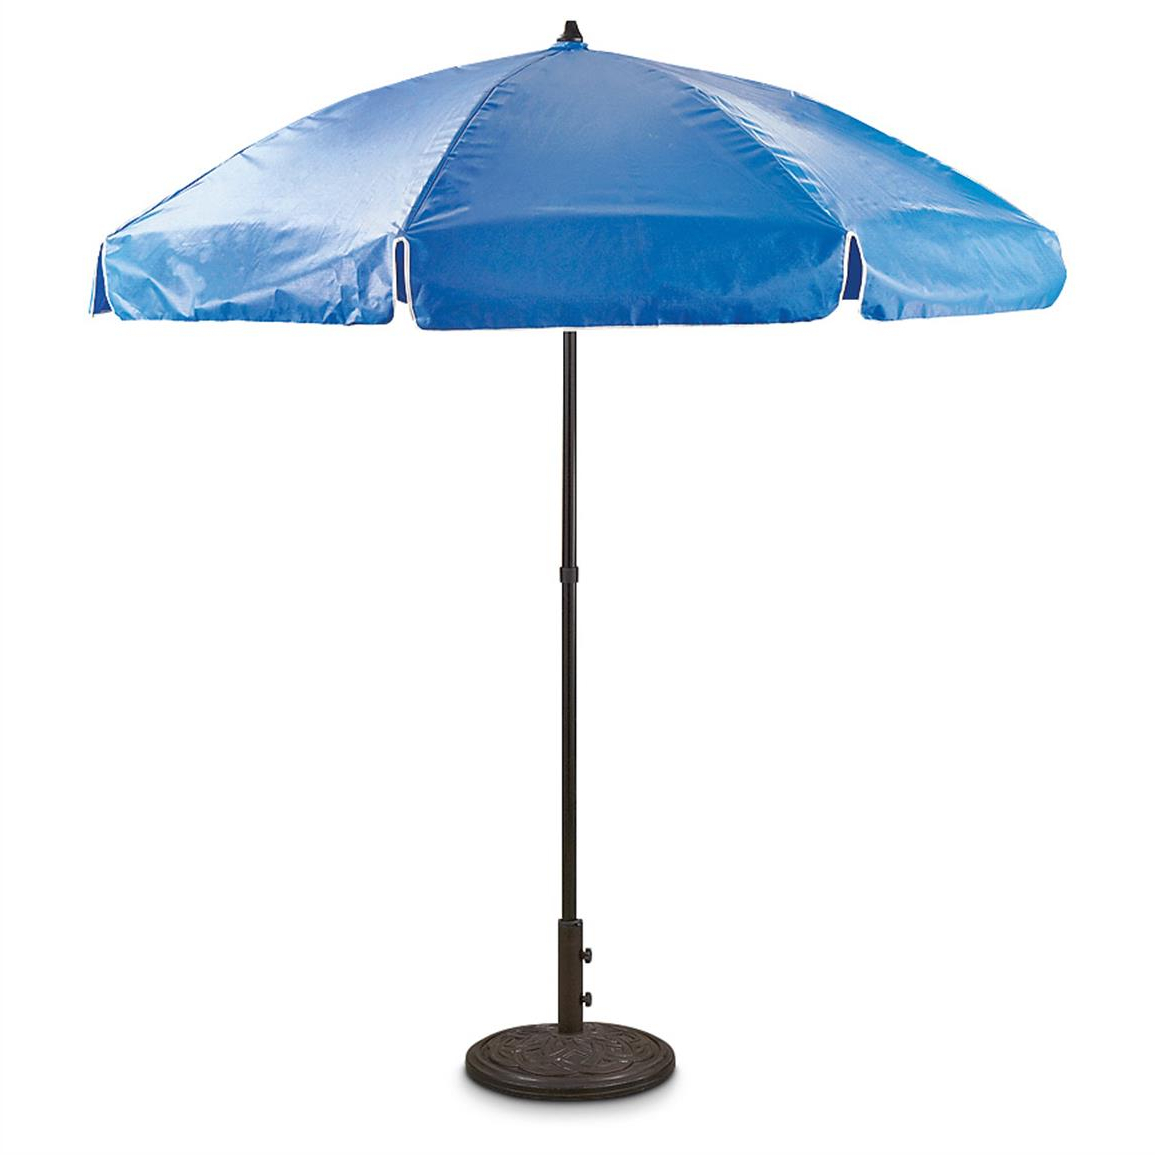 "2019 7'6"" Drape Vinyl Patio Umbrella – 635354, Patio Umbrellas At With Regard To Drape Umbrellas (View 2 of 20)"